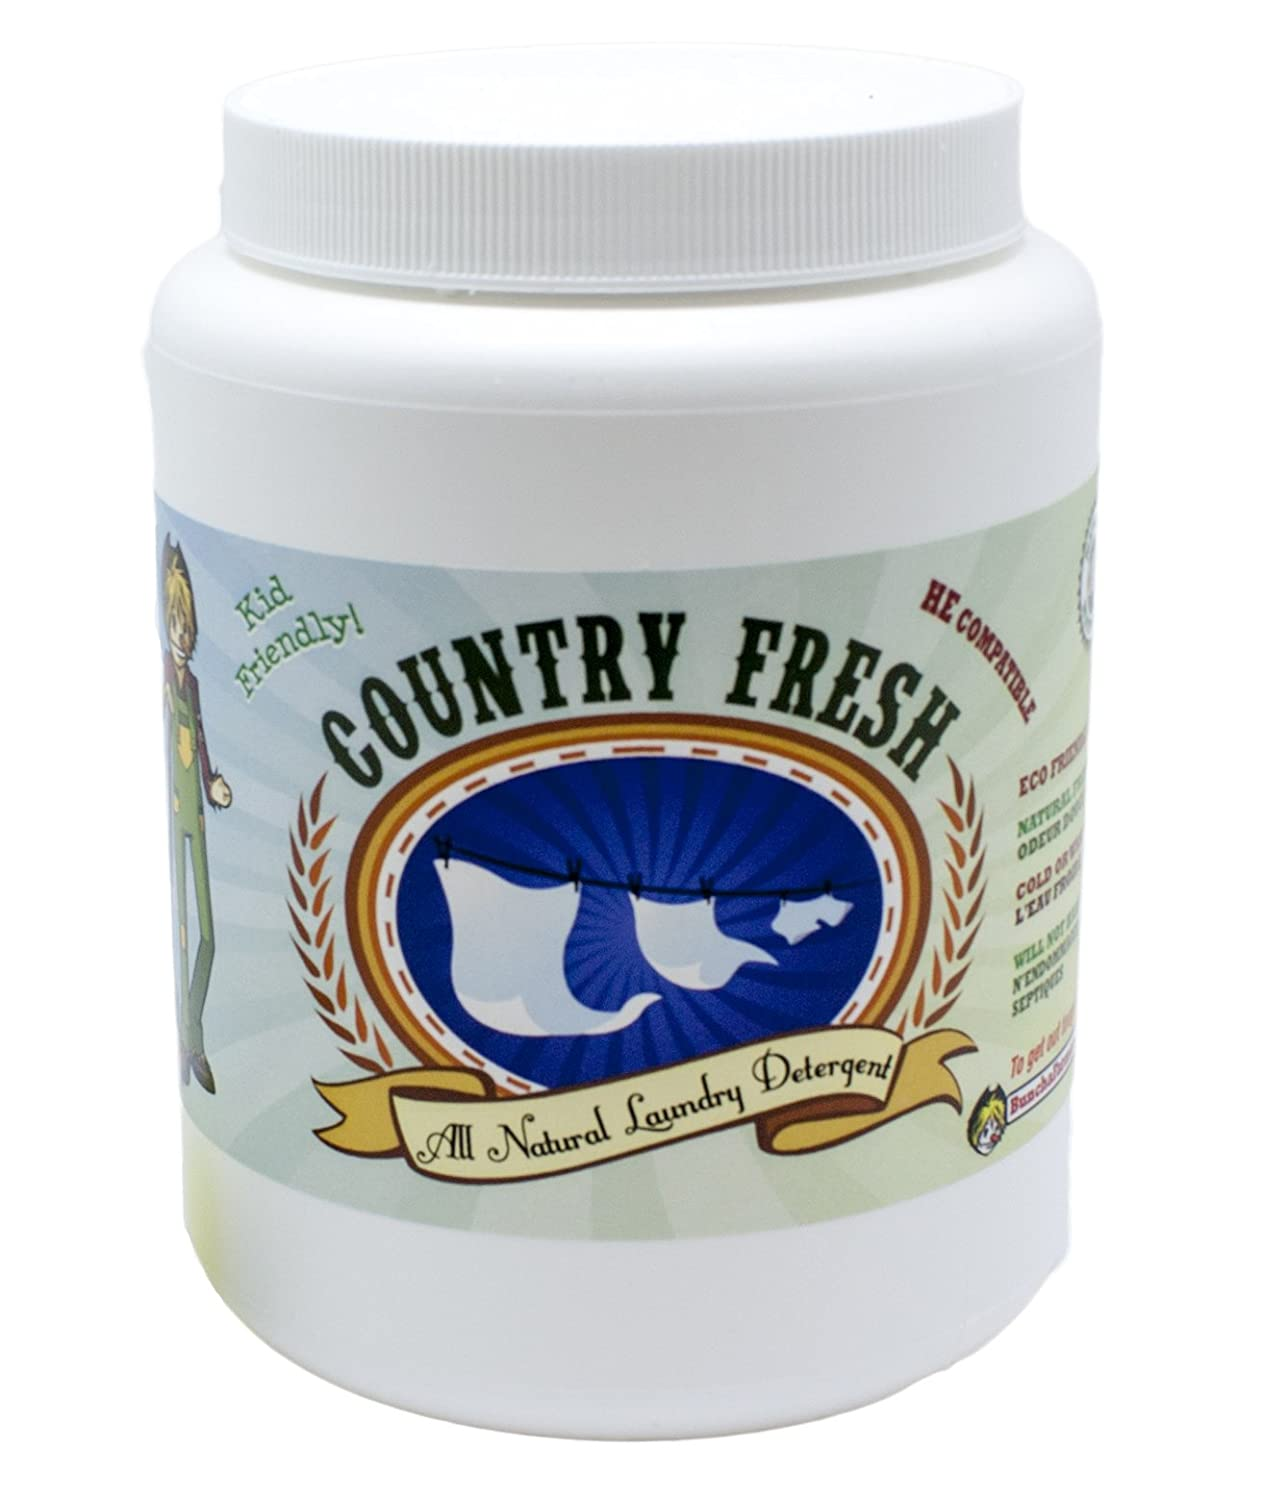 BunchaFarmers Country Fresh All Natural Child-Safe Laundry Detergent (Lemon Scented, Large, 600 Grams) Bunch A Farmers Inc. BAF015